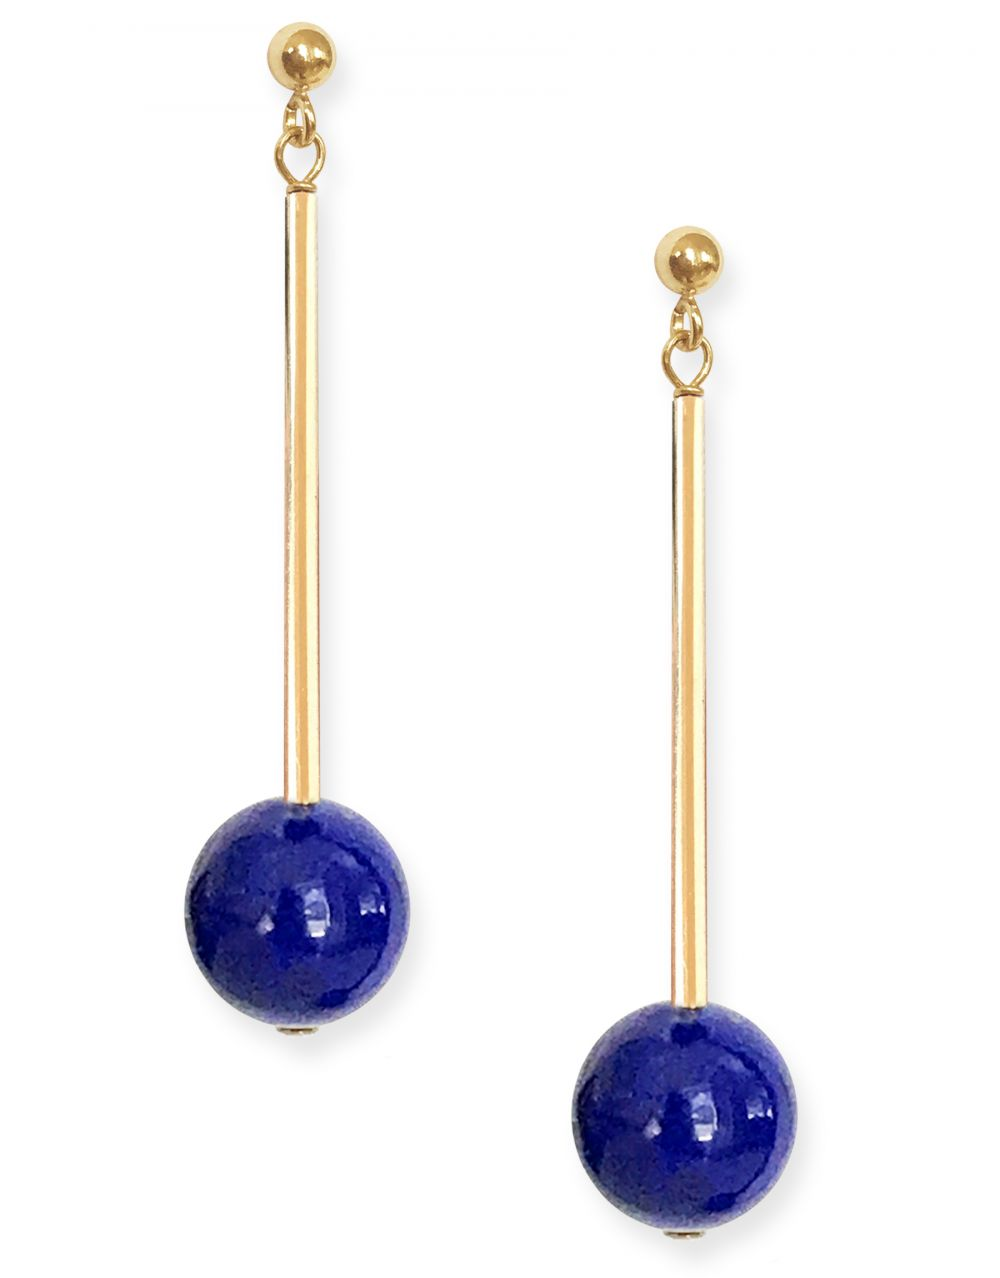 Umbra Earrings<br /><i><small>14K Yellow Gold with Lapis Lazuli</small></i><br />